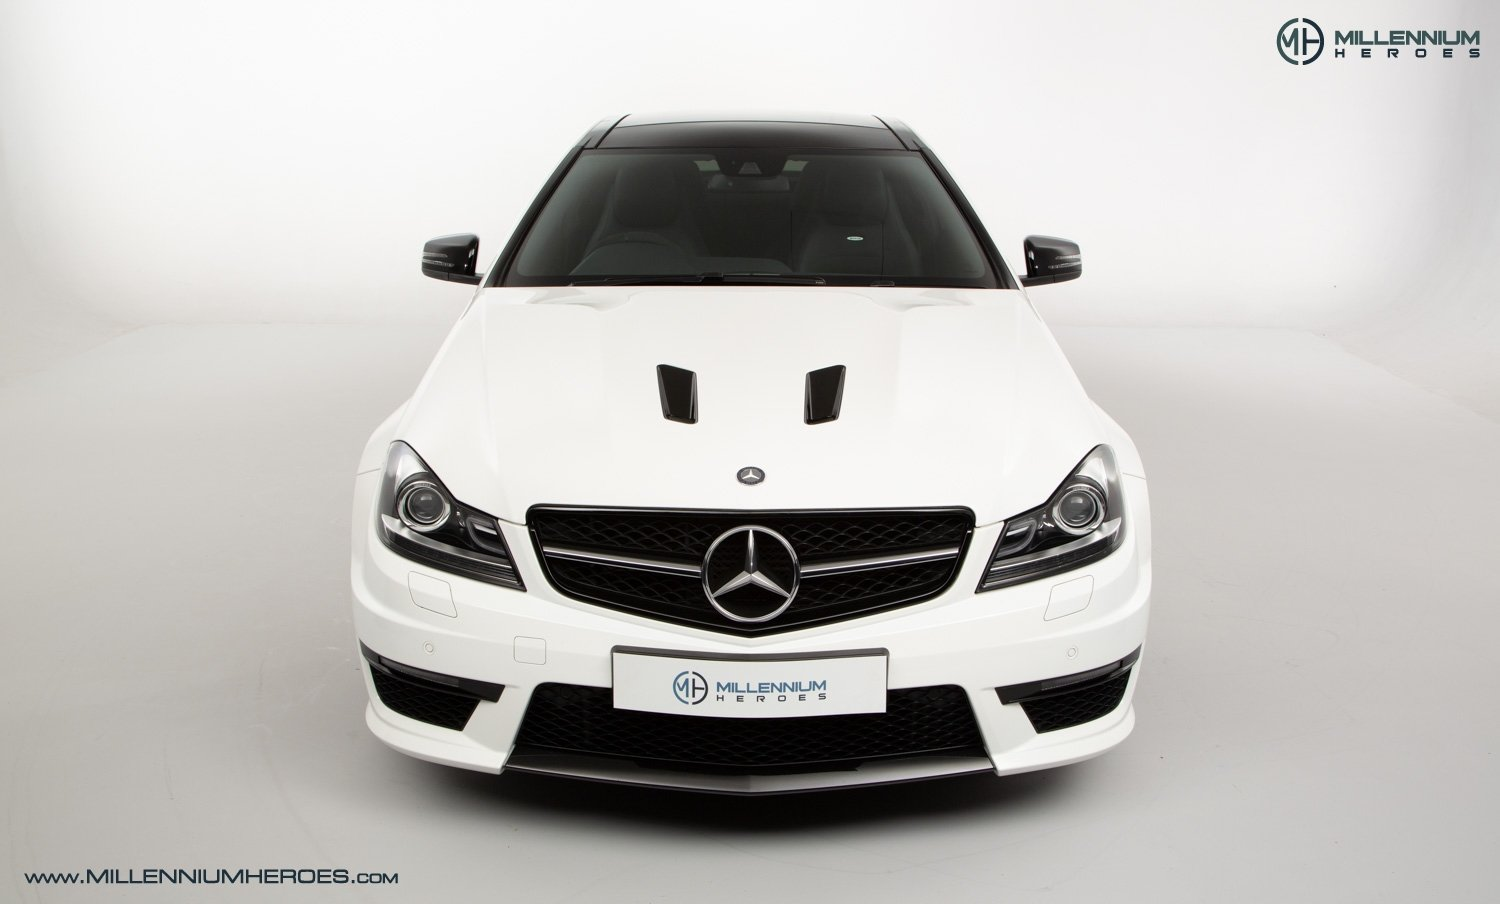 2013 MERCEDES C63 507 COUPE For Sale (picture 3 of 22)